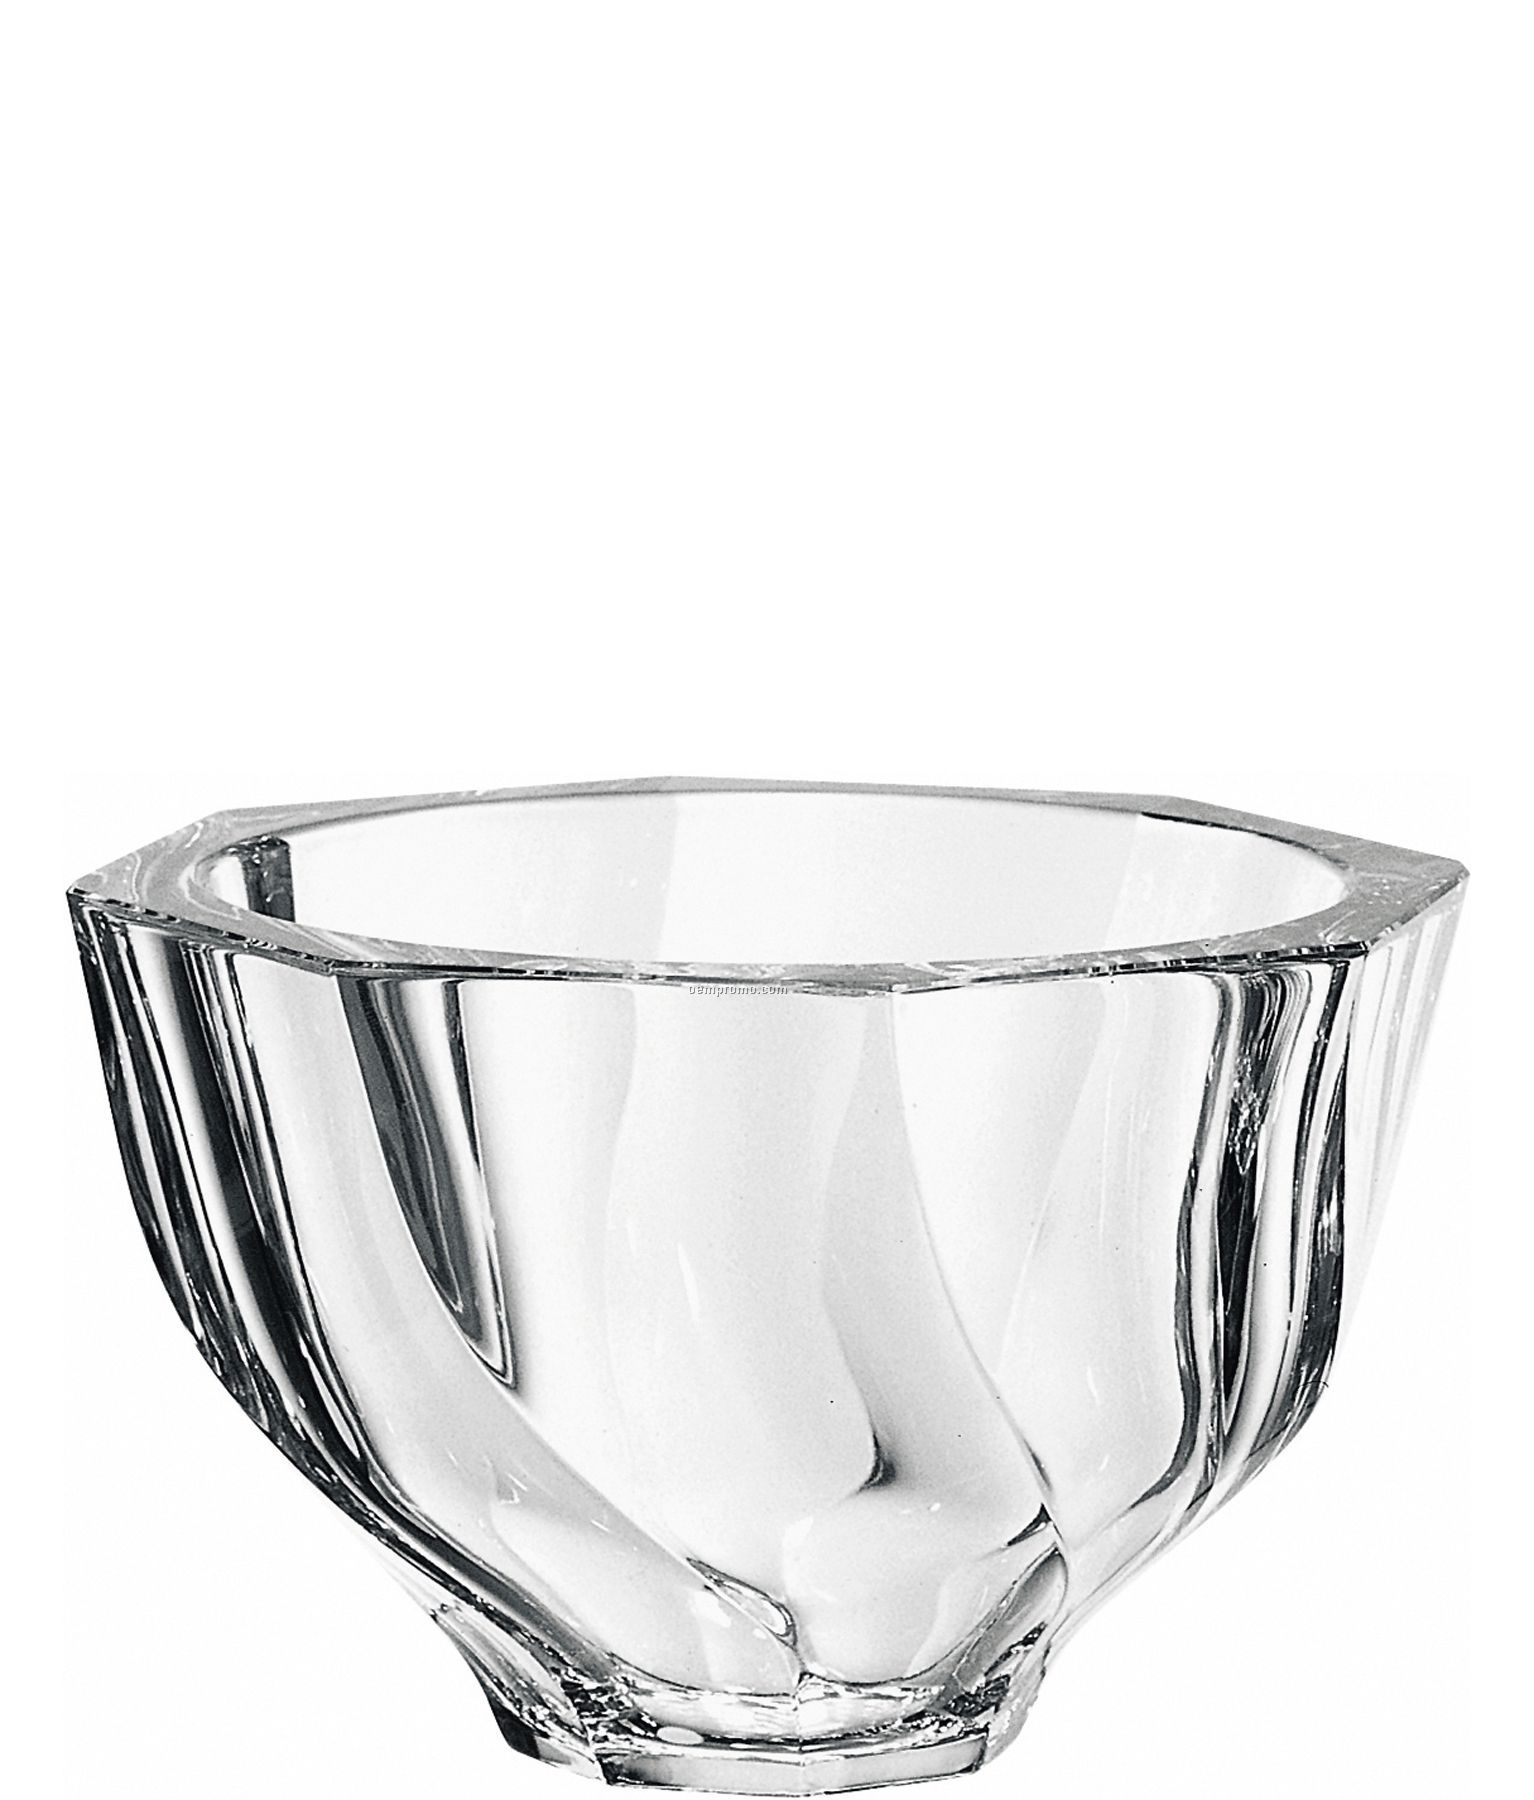 "Residence Crystal Biased Cut Bowl By Olle Alberius (4 3/4""X7 1/2"")"